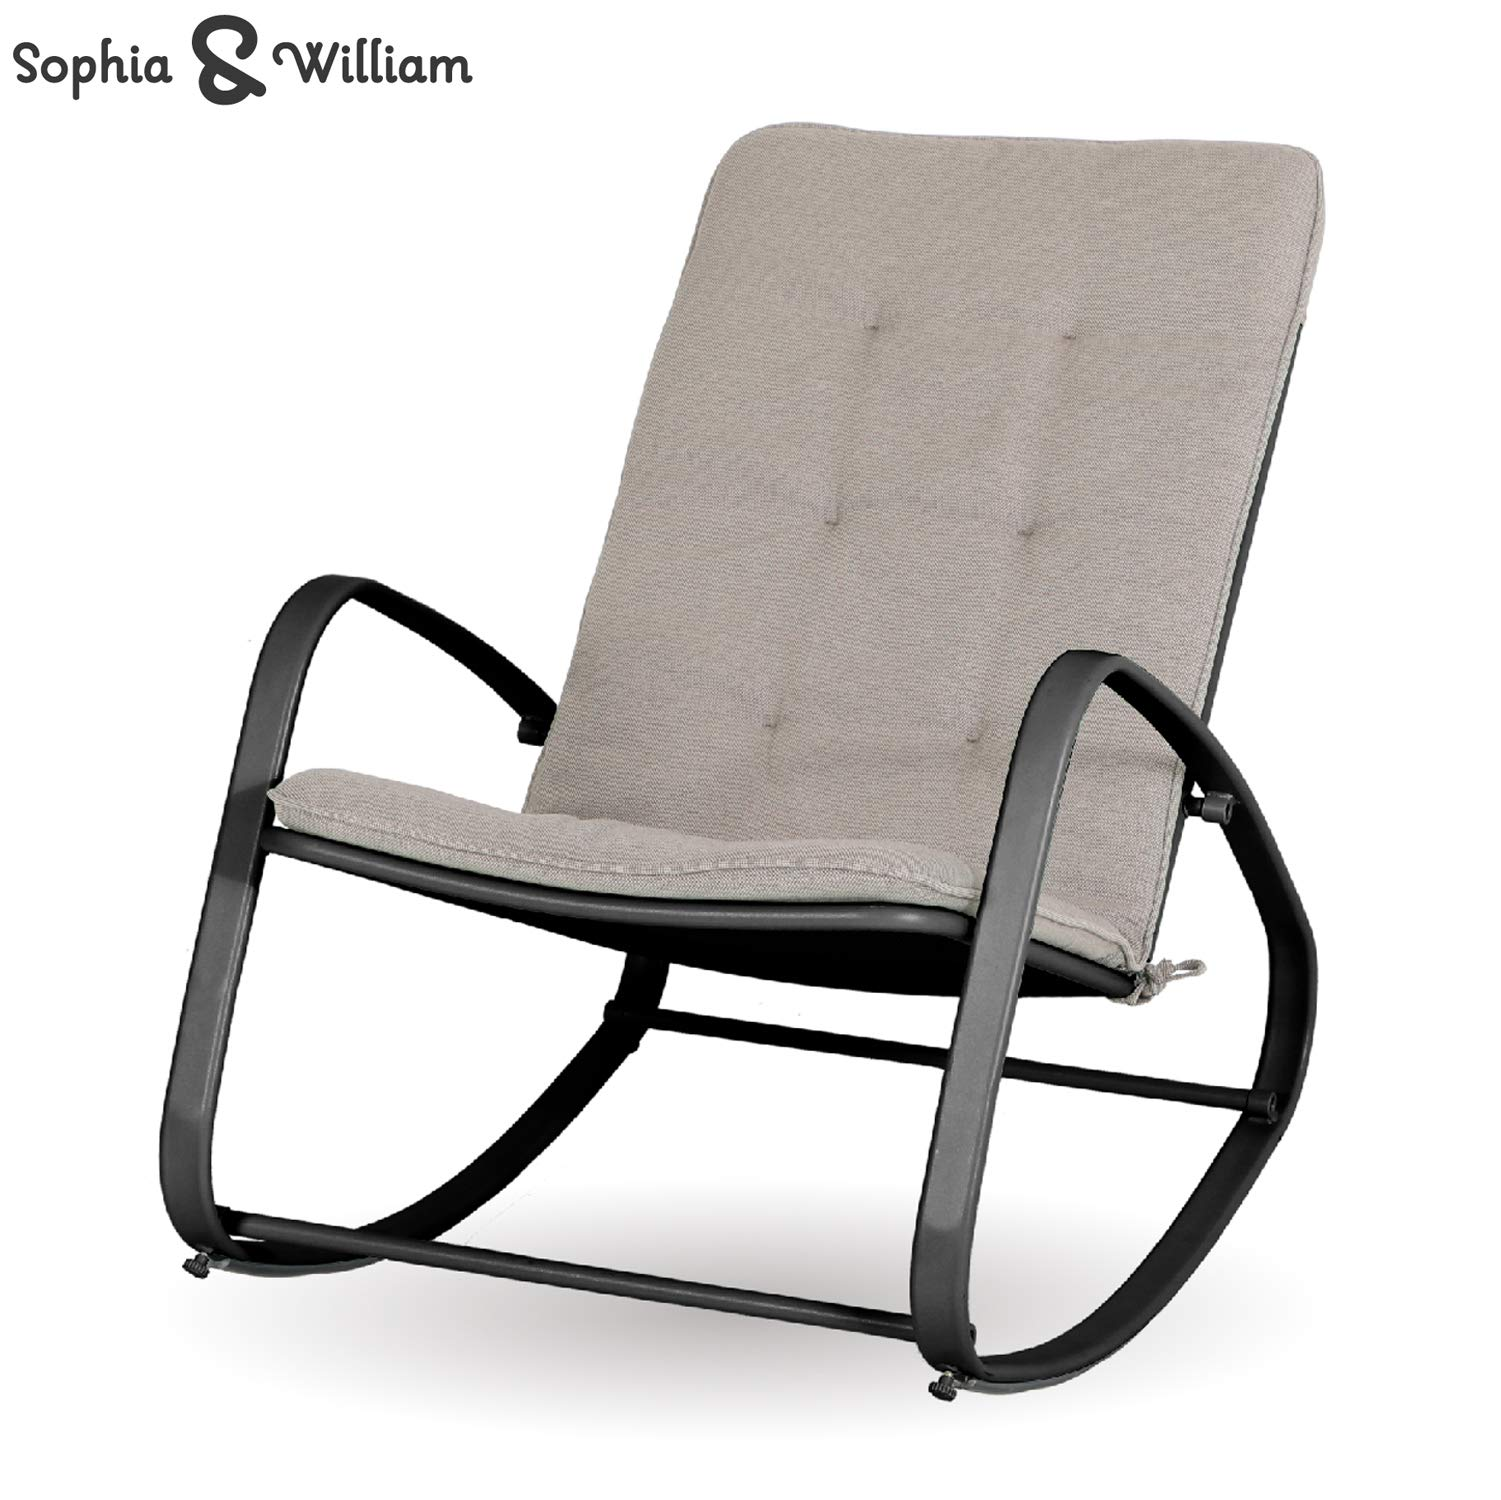 Sophia and William Outdoor Patio Rocking Chair Padded Steel Rocker Chair Support 300lbs, Black by Sophia and William